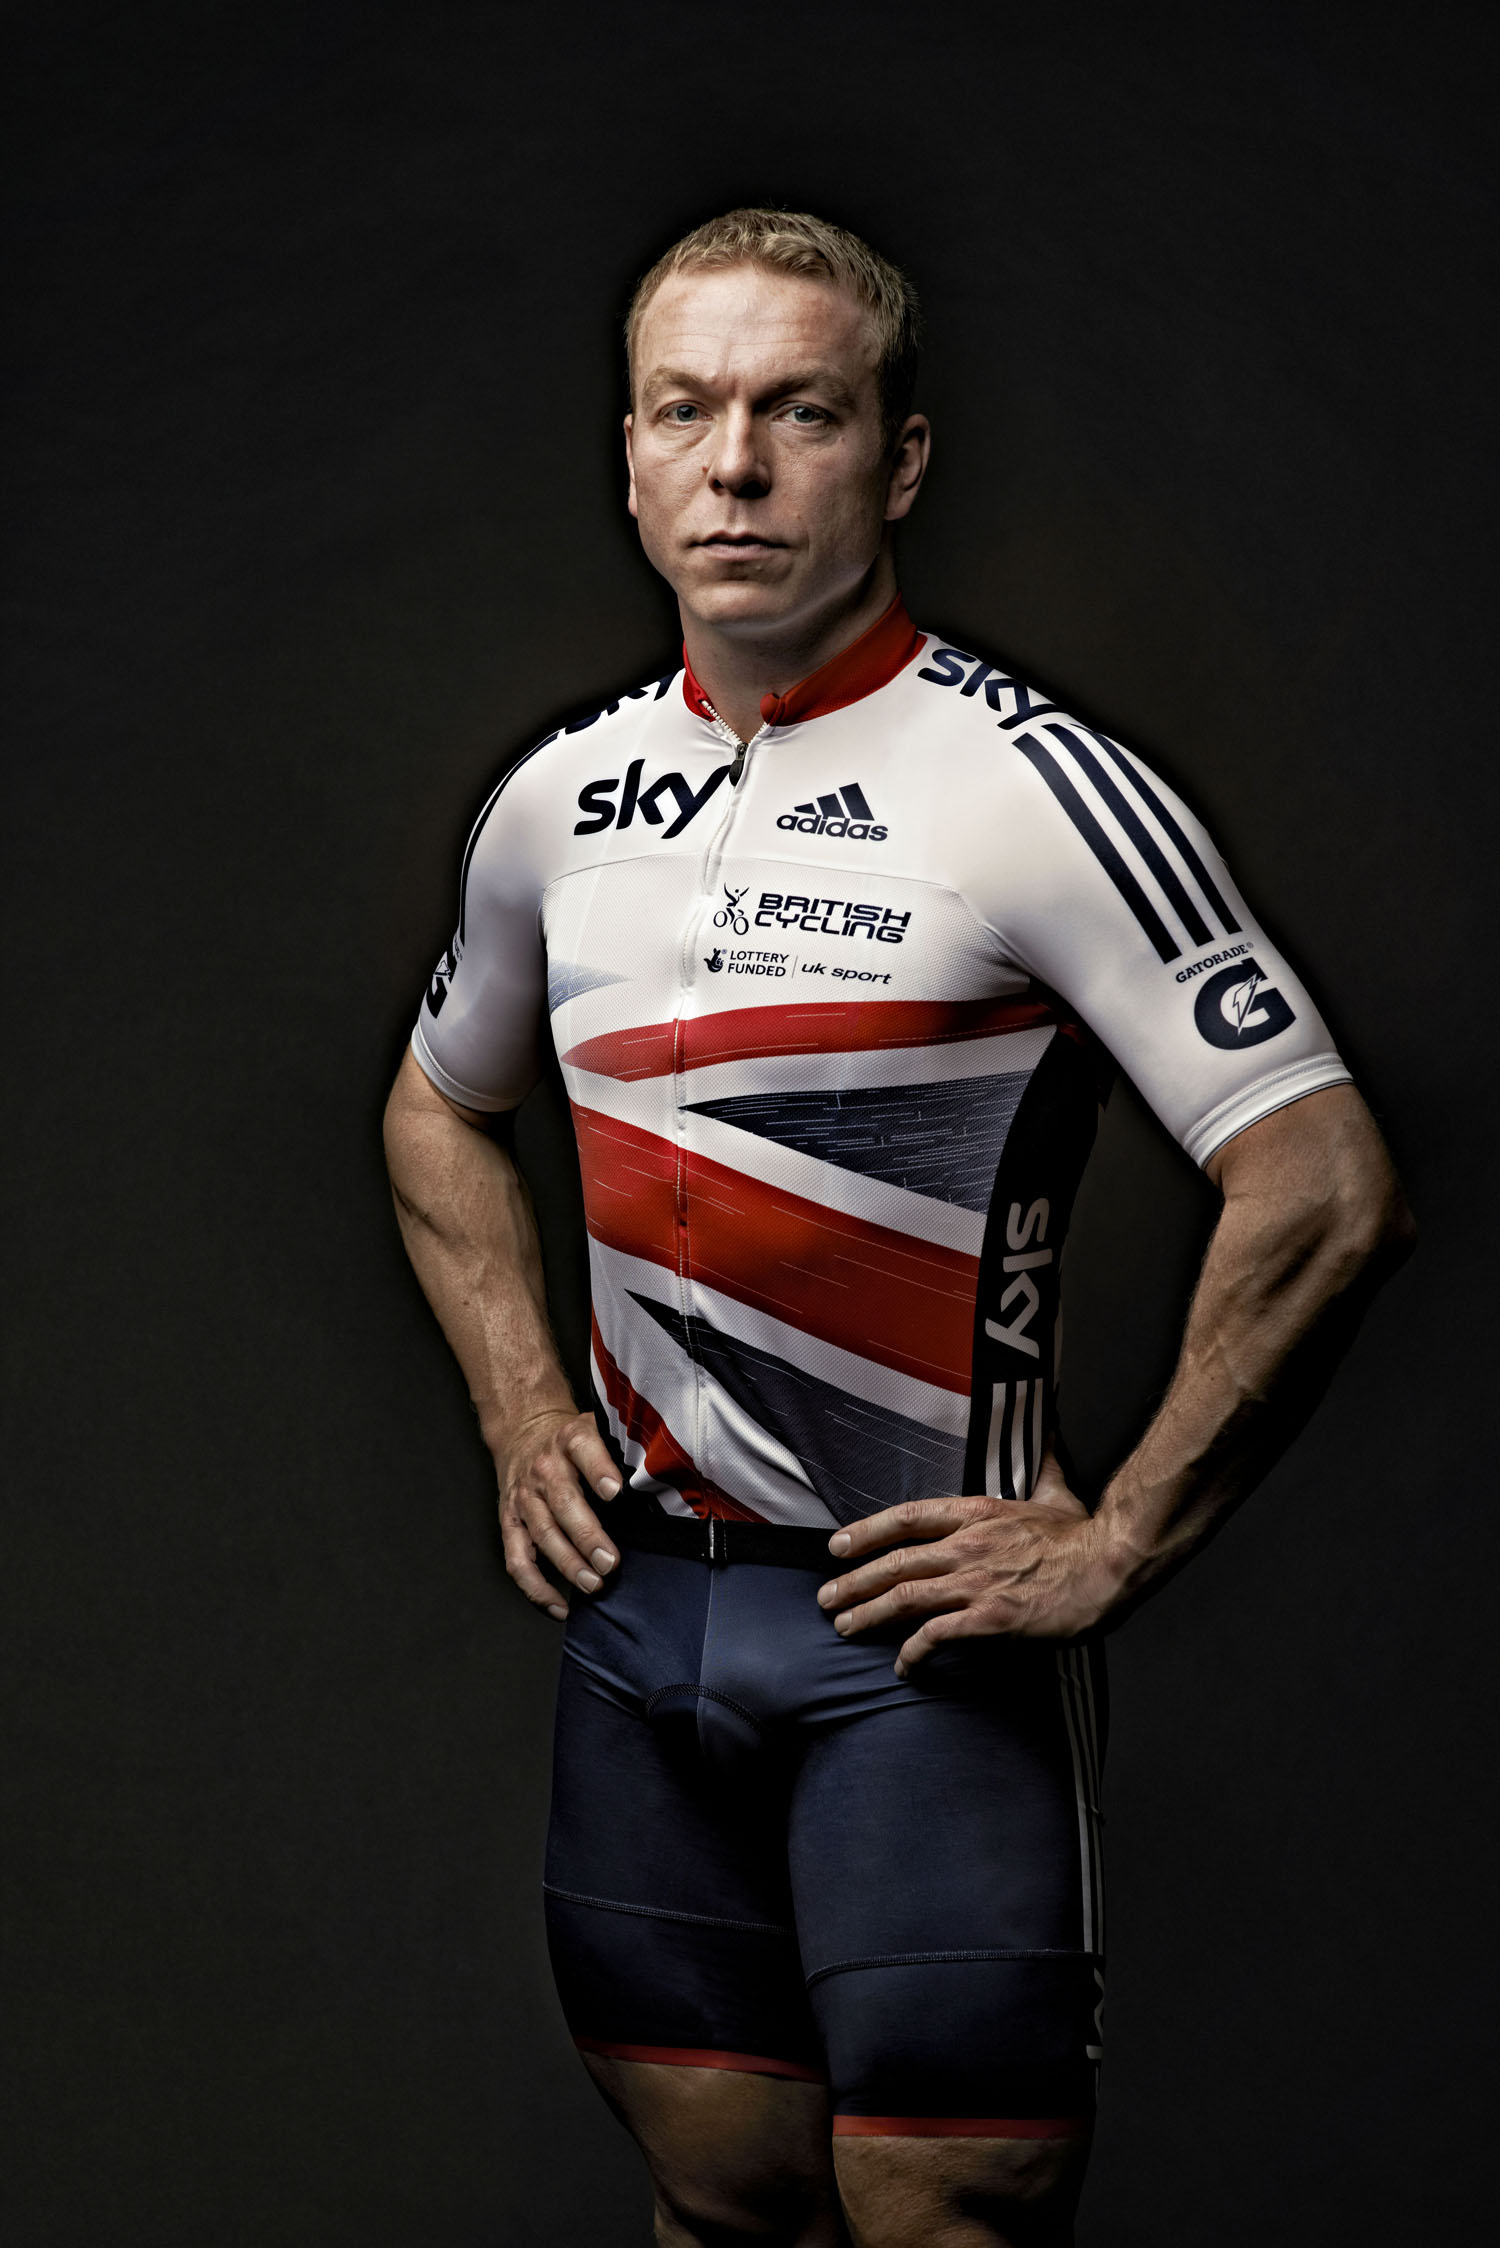 Following months of close work between adidas and British Cycling 1f1aad6cc